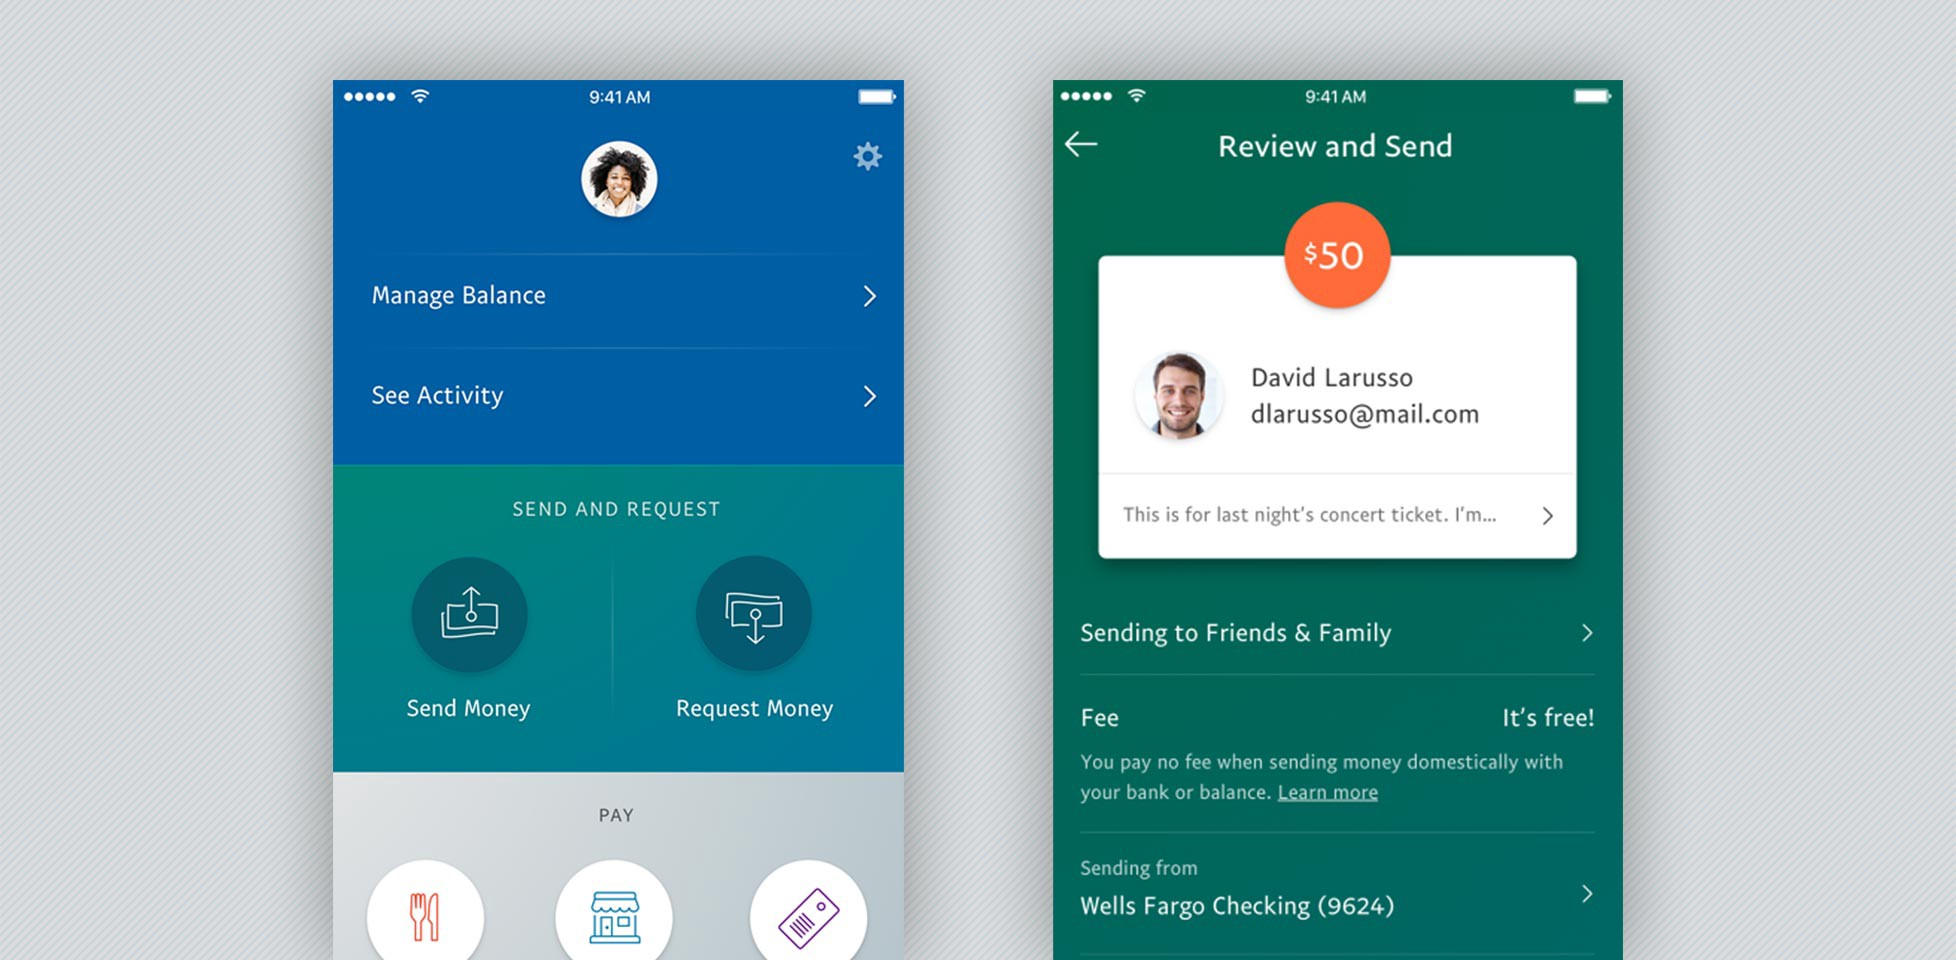 PayPal relaunches its mobile apps with minimal new design — D/UX